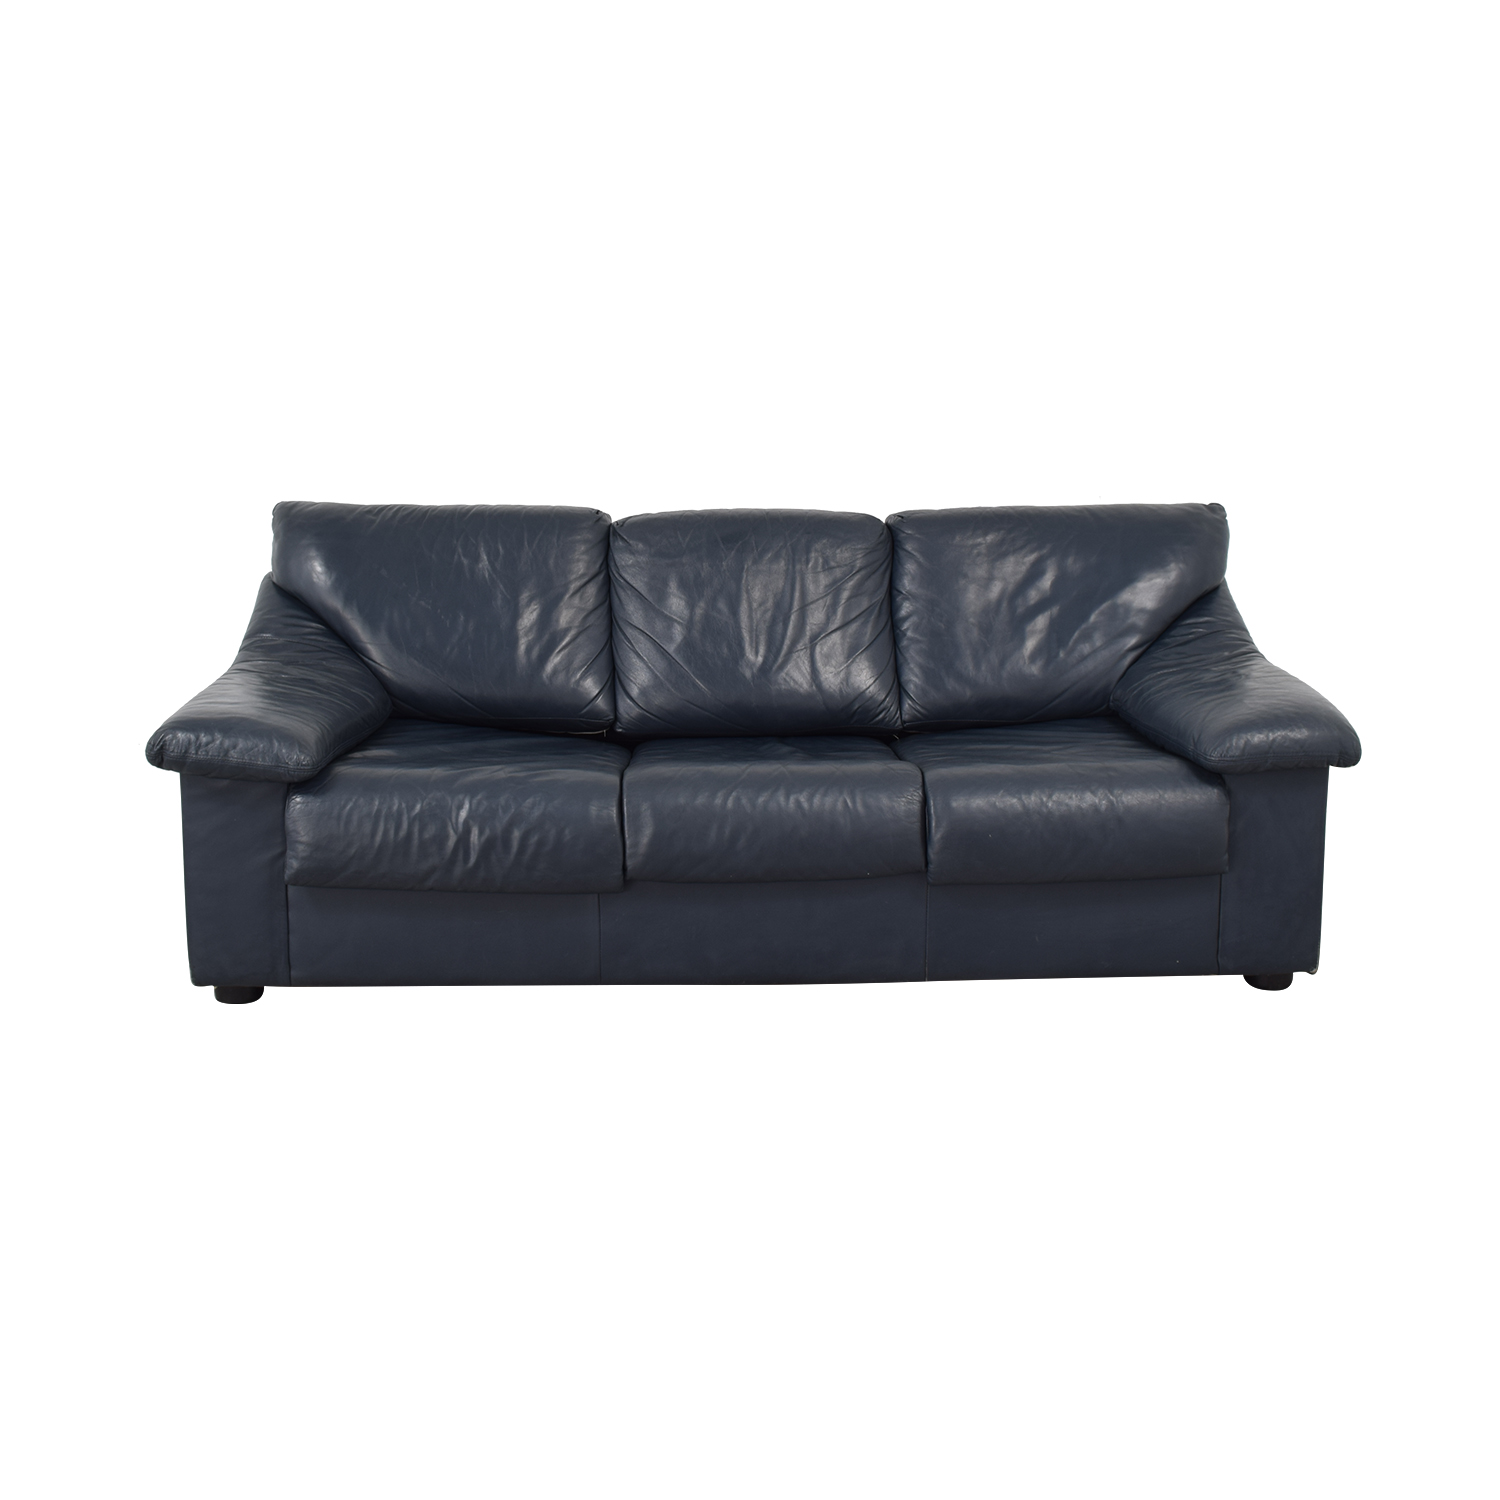 Navy Three-Seat Sofabed for sale